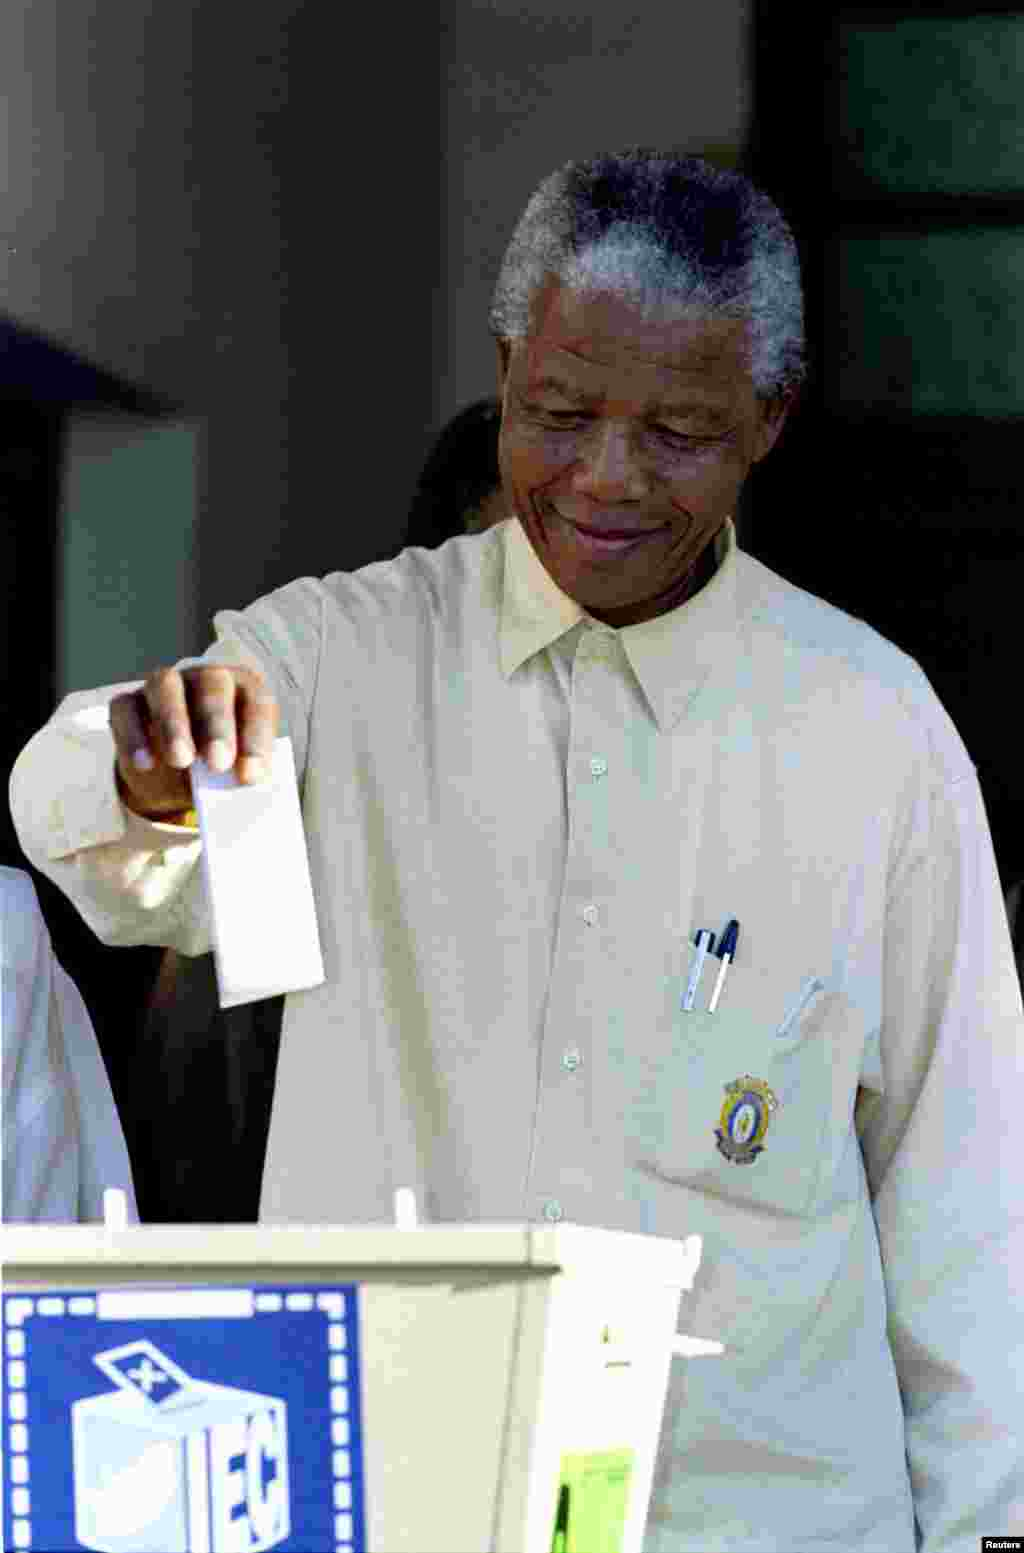 Nelson Mandela casts his ballot in South Africa's first multiracial elections in April 1994.